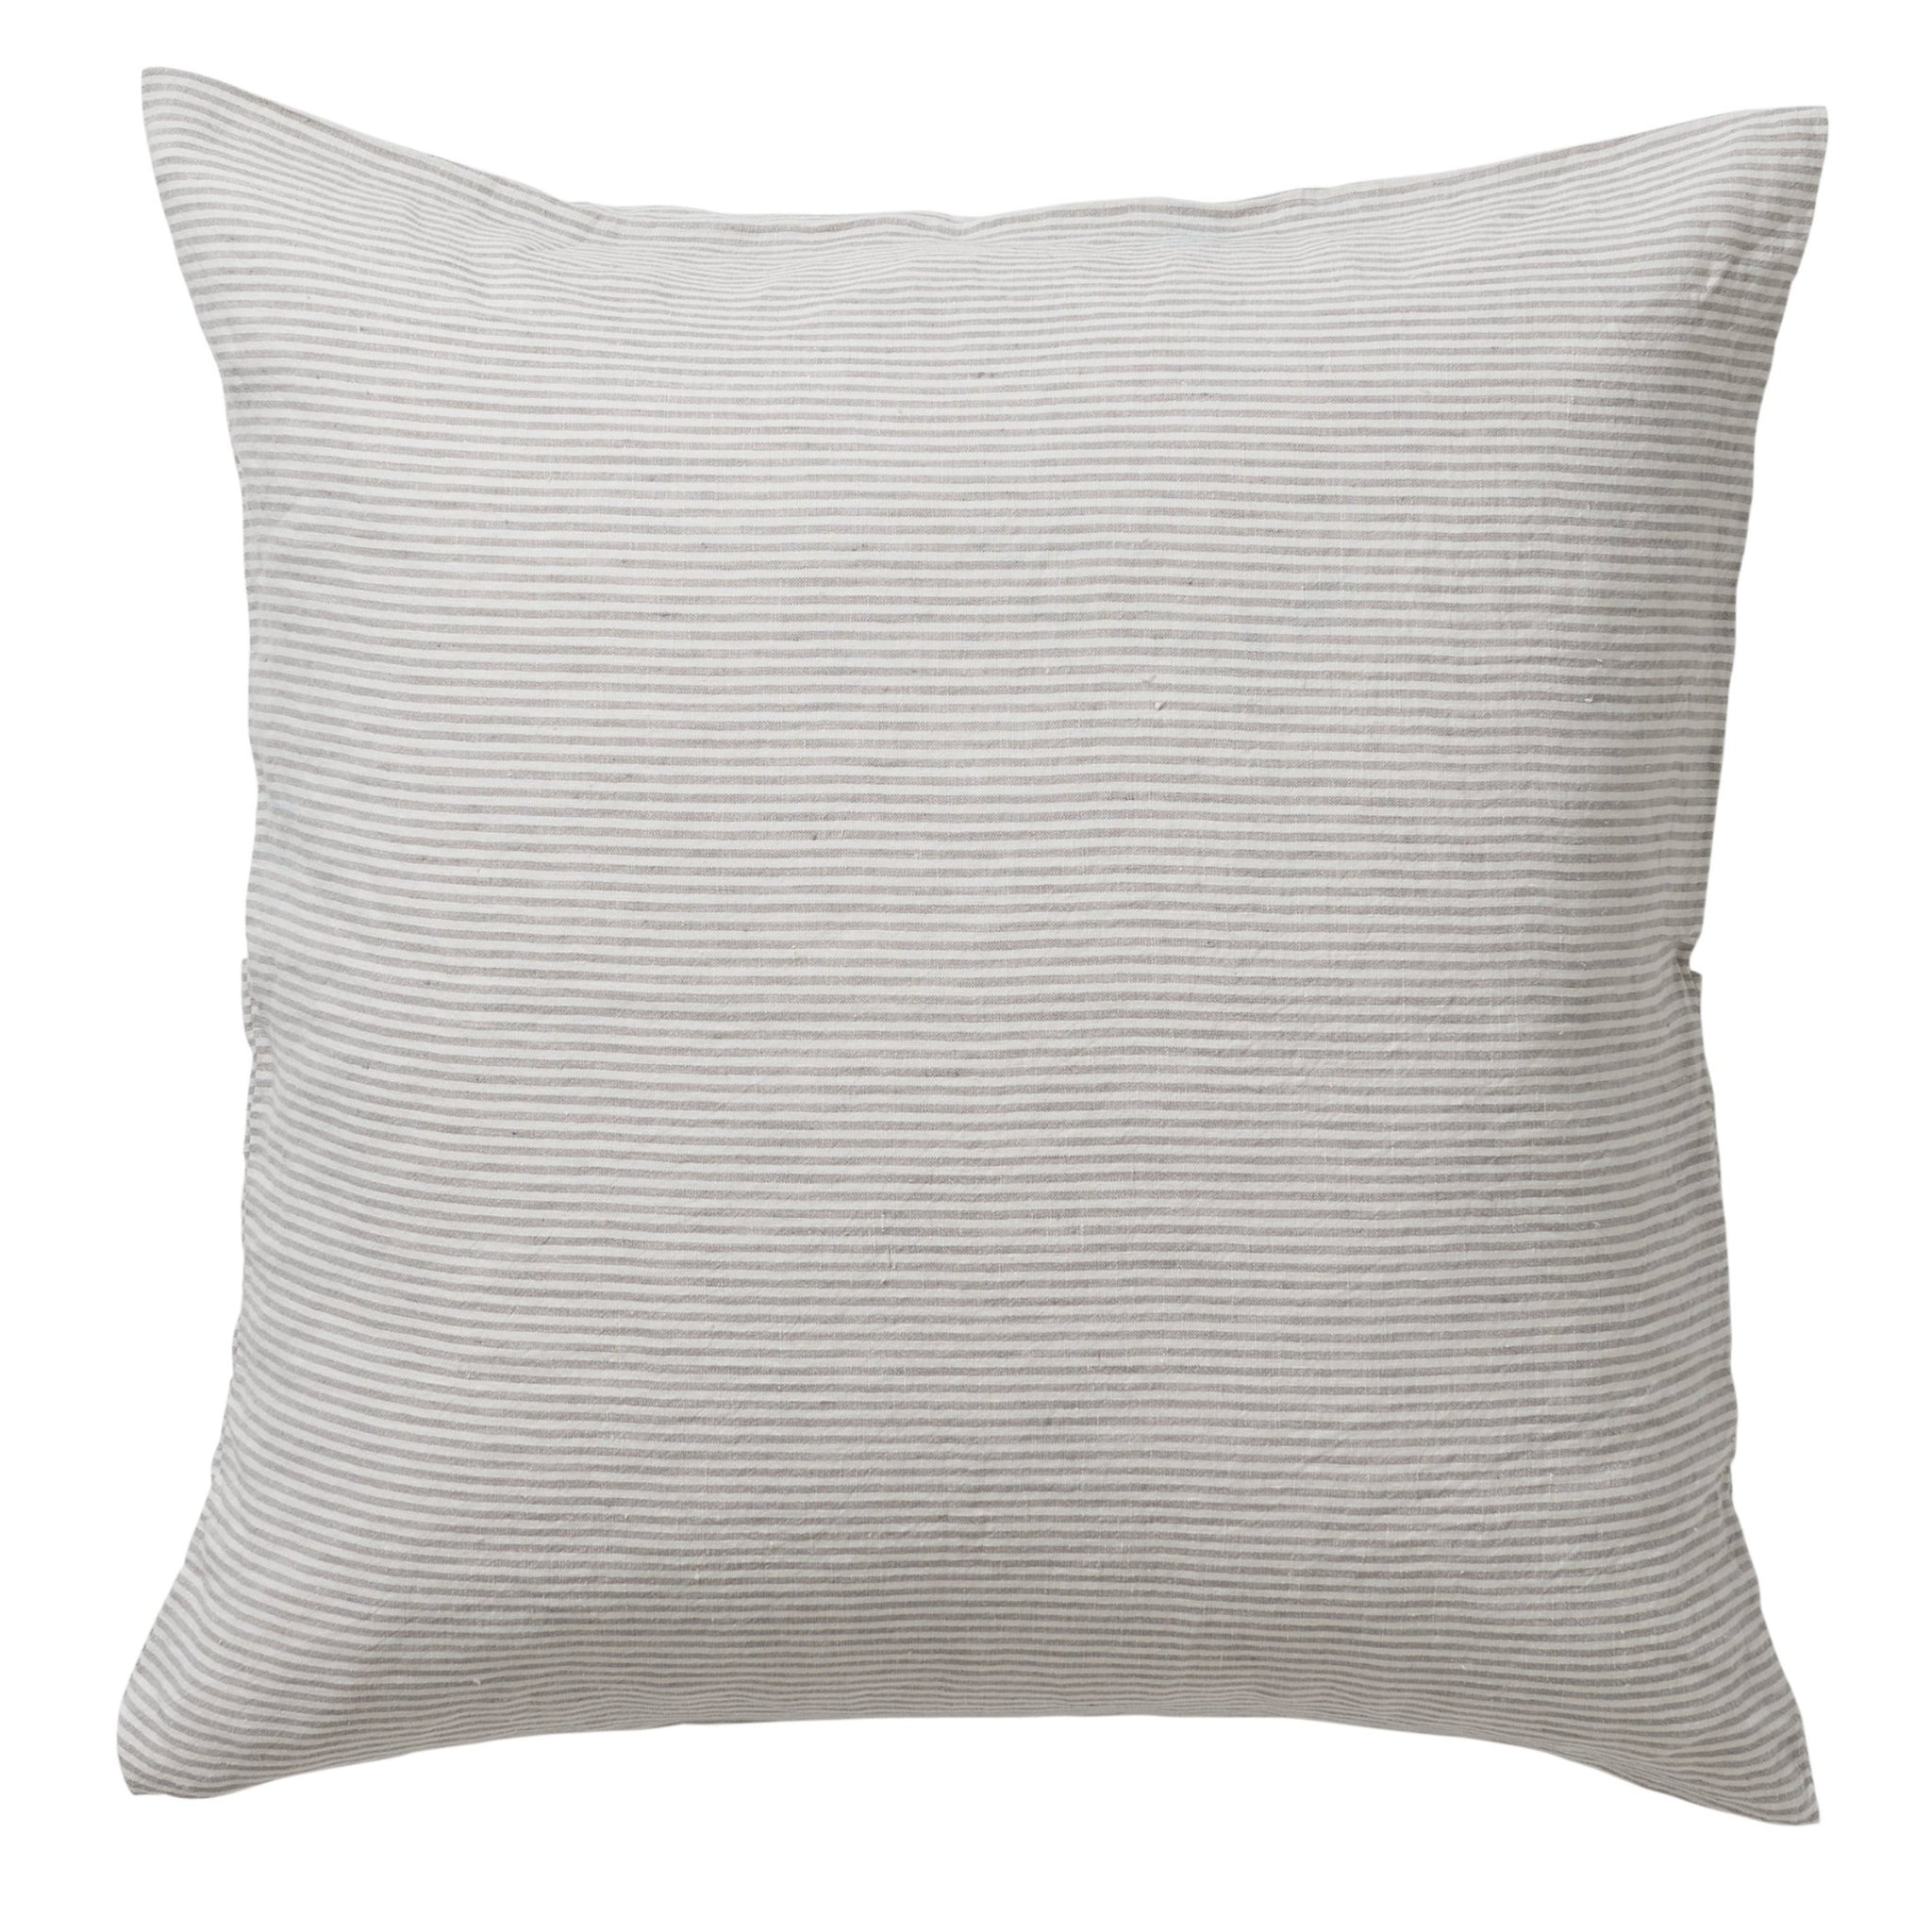 Sove Linen Euro Pillowcase - Stripe